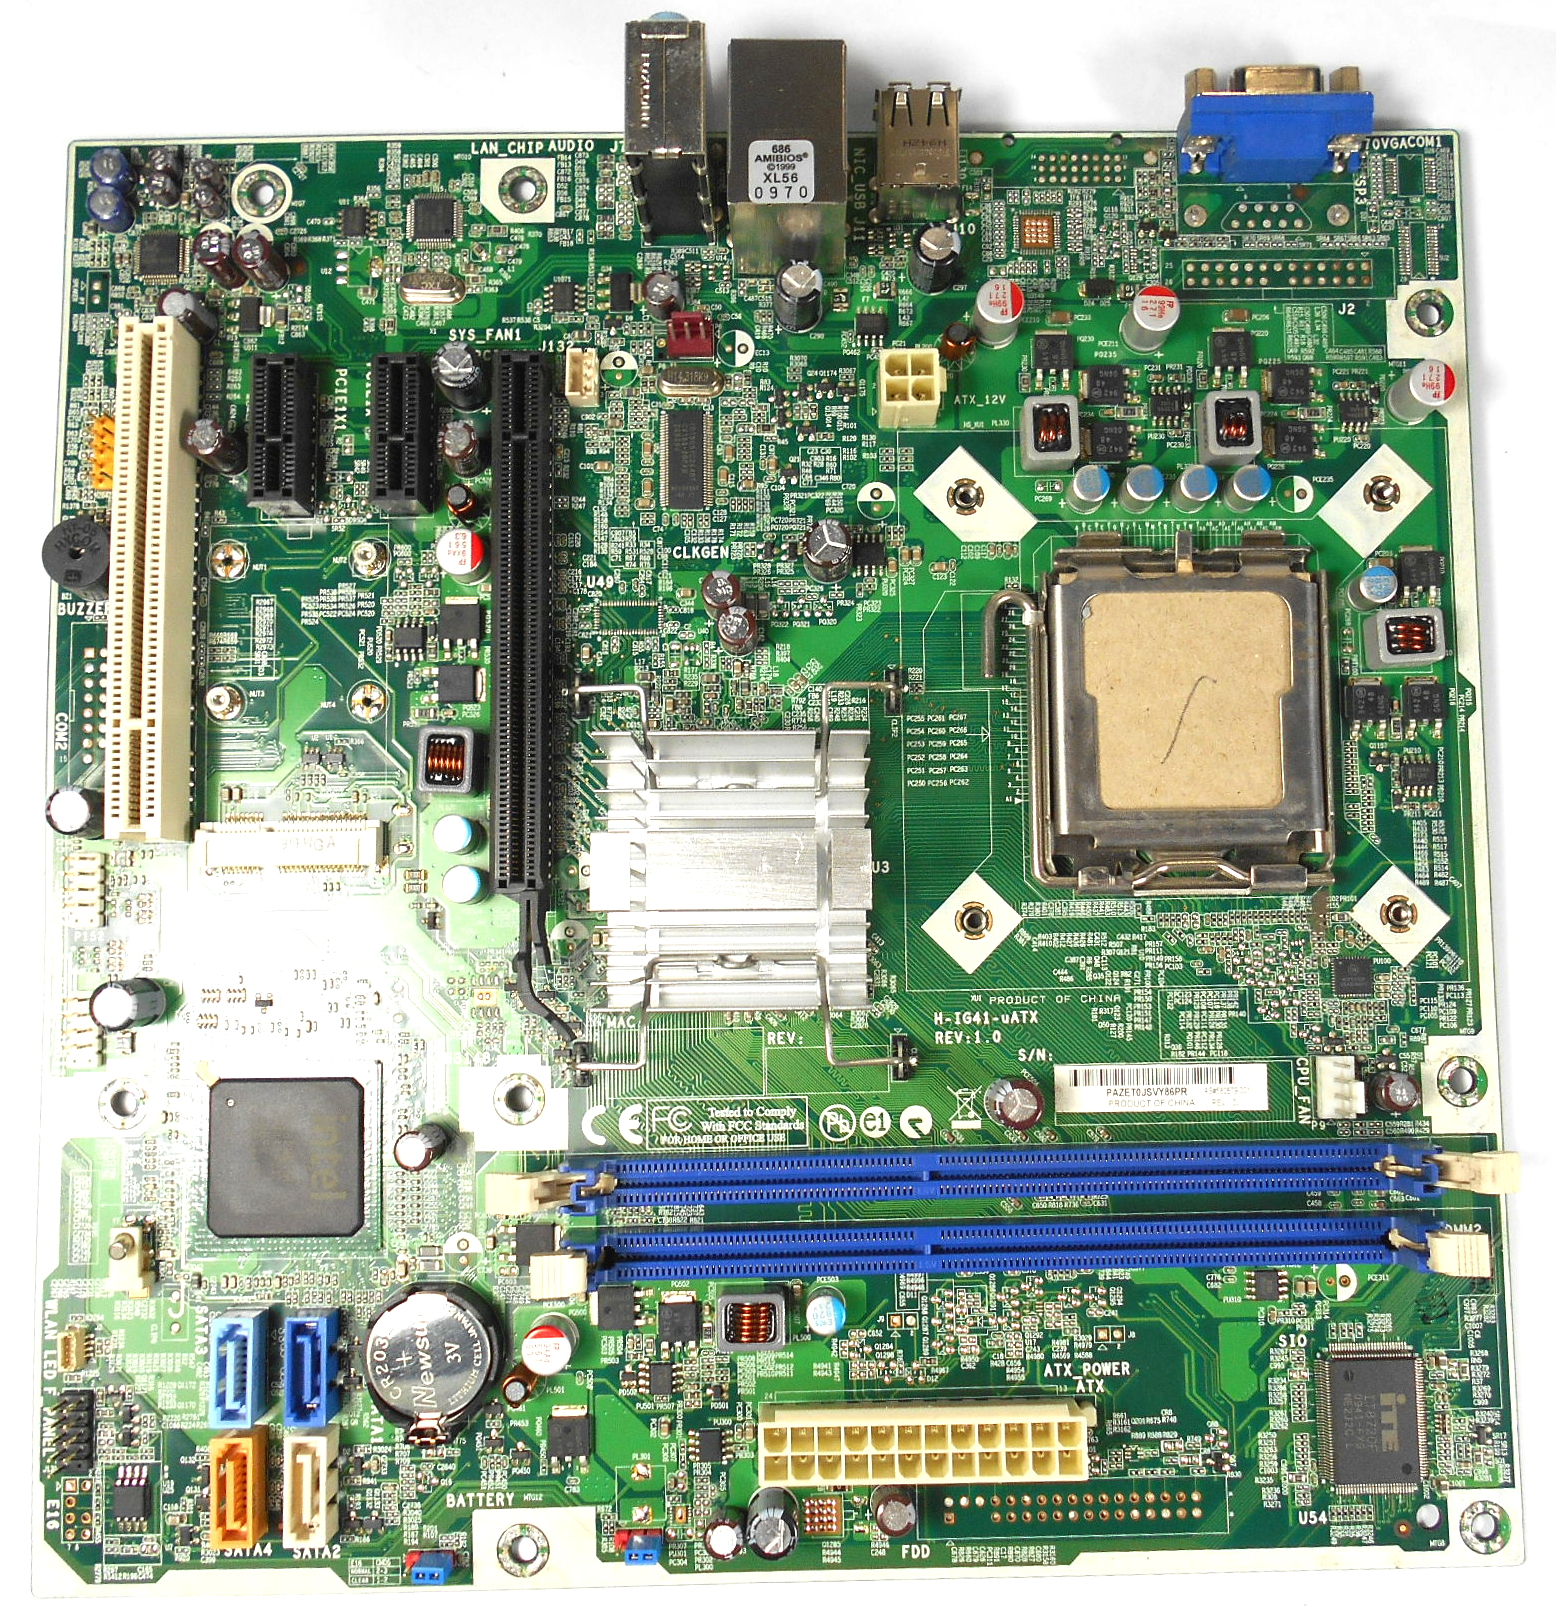 HP 582679-001 H-IG41-uATX Socket 775 Motherboard